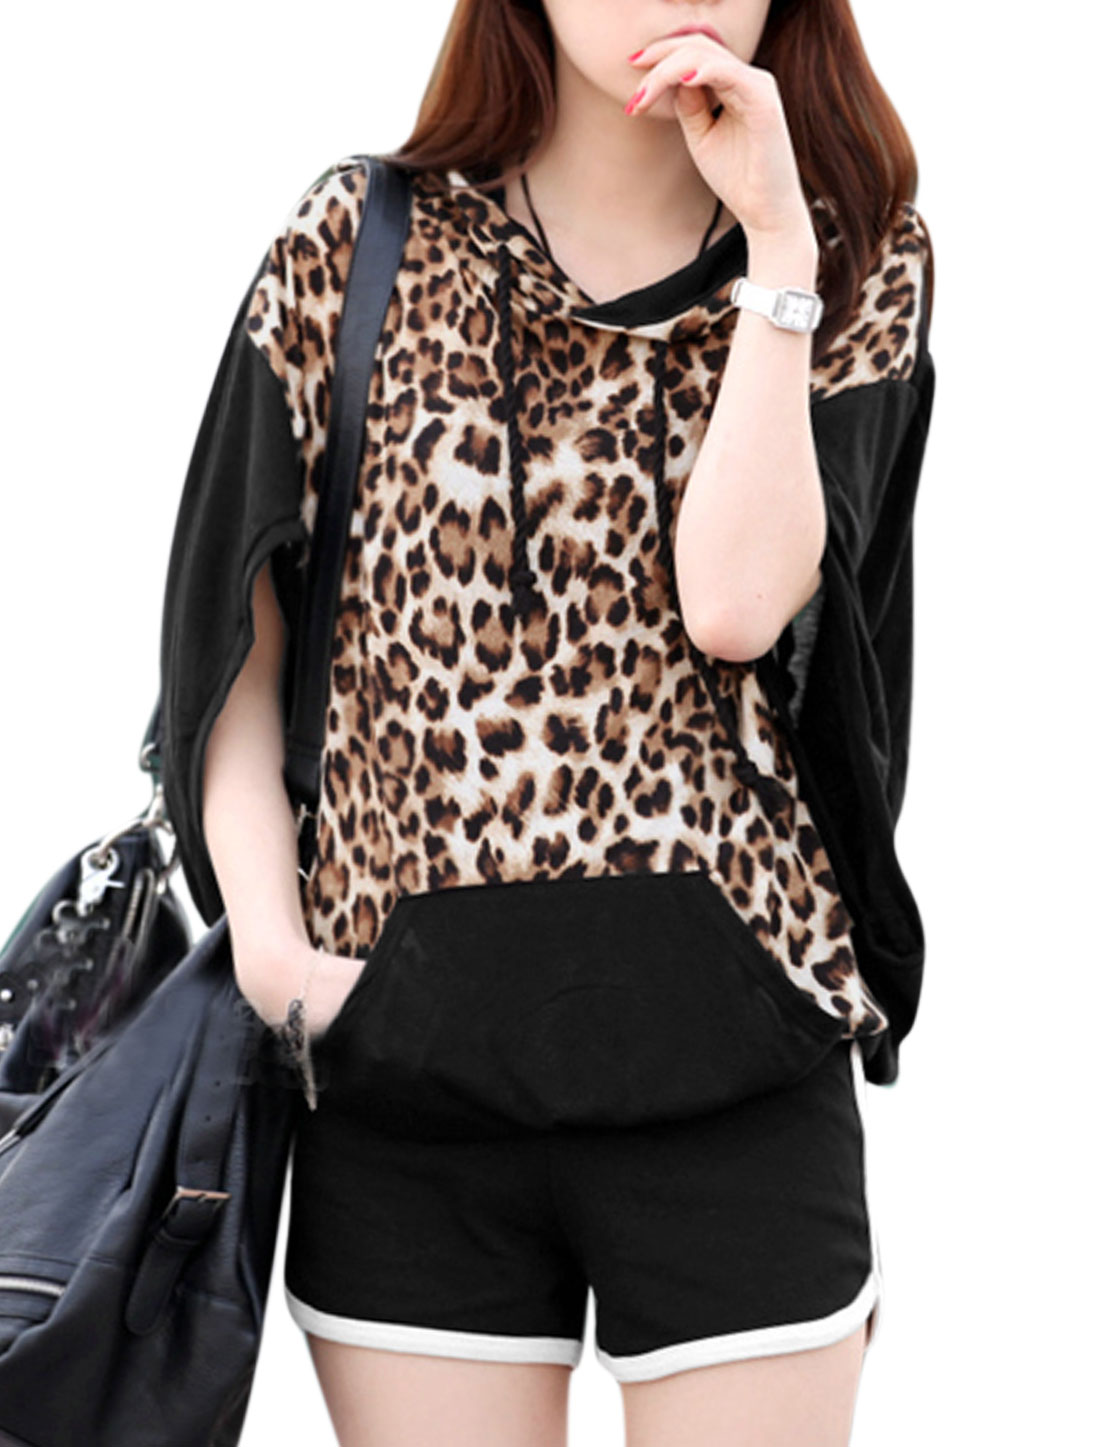 Lady Leopard Prints Shirt w Elastic Waist Shorts Black XS